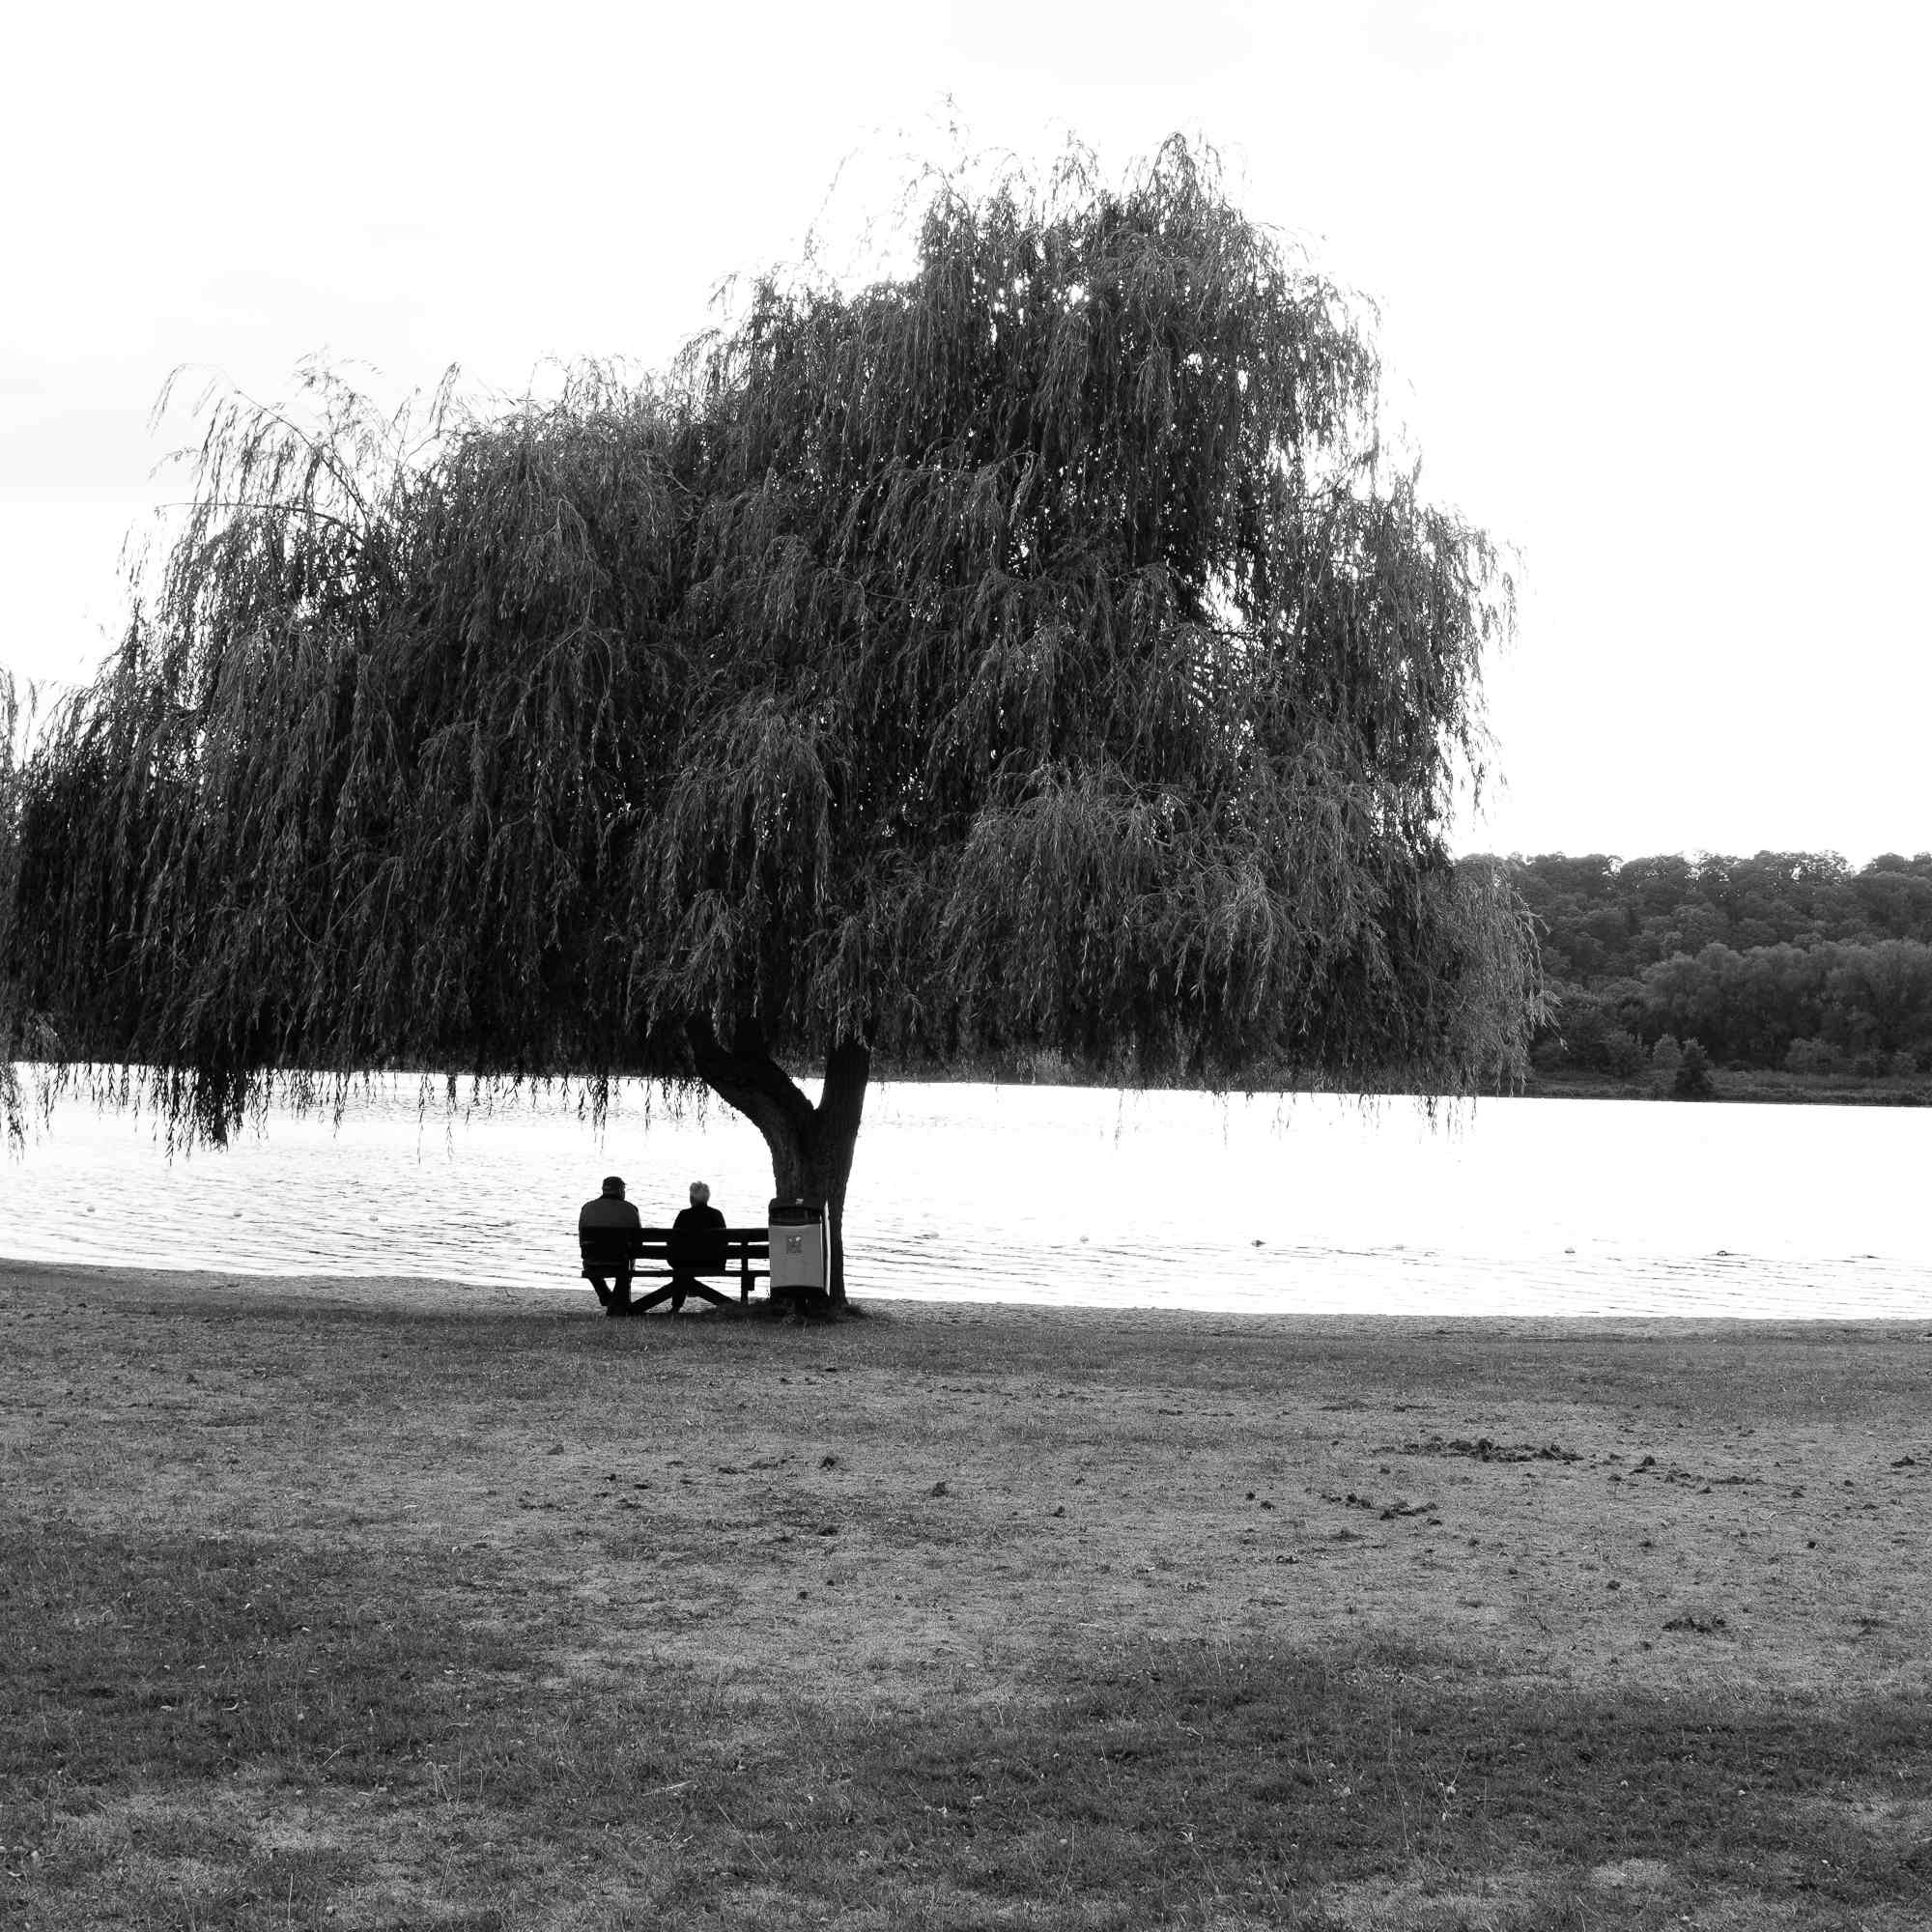 People sitting on a bench under a tree at a lake